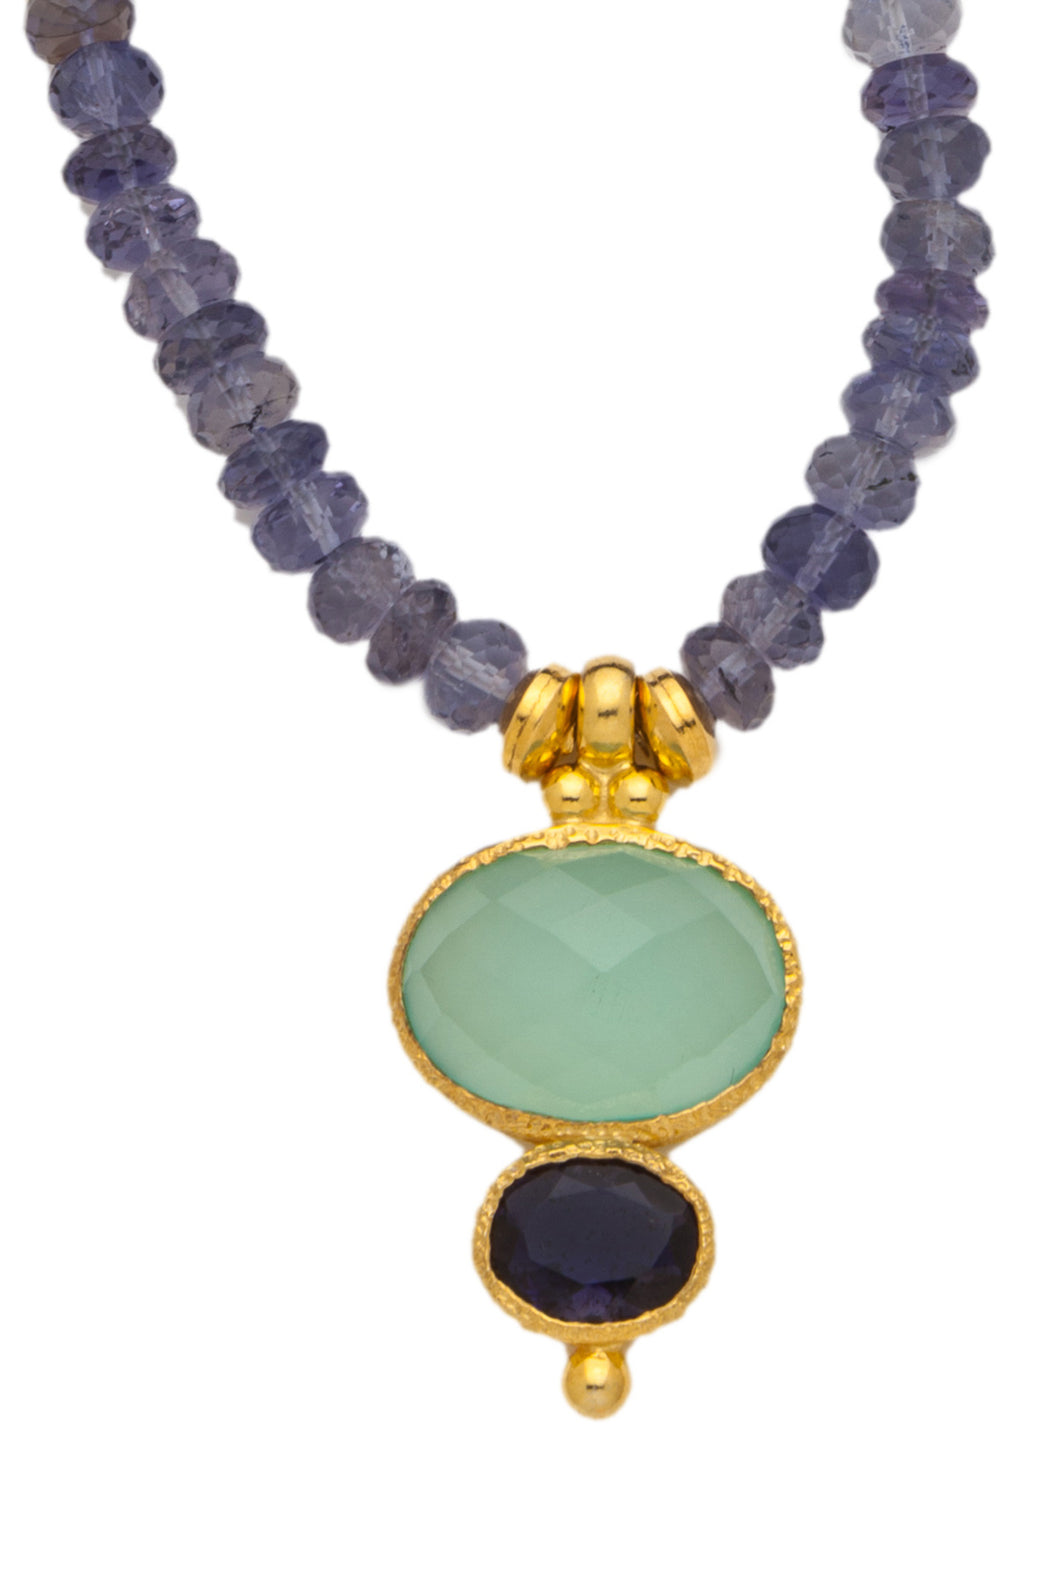 Iolite Necklace with a Chacedony and Iolite Pendant set in 24kt gold vermeil NF079-ICI